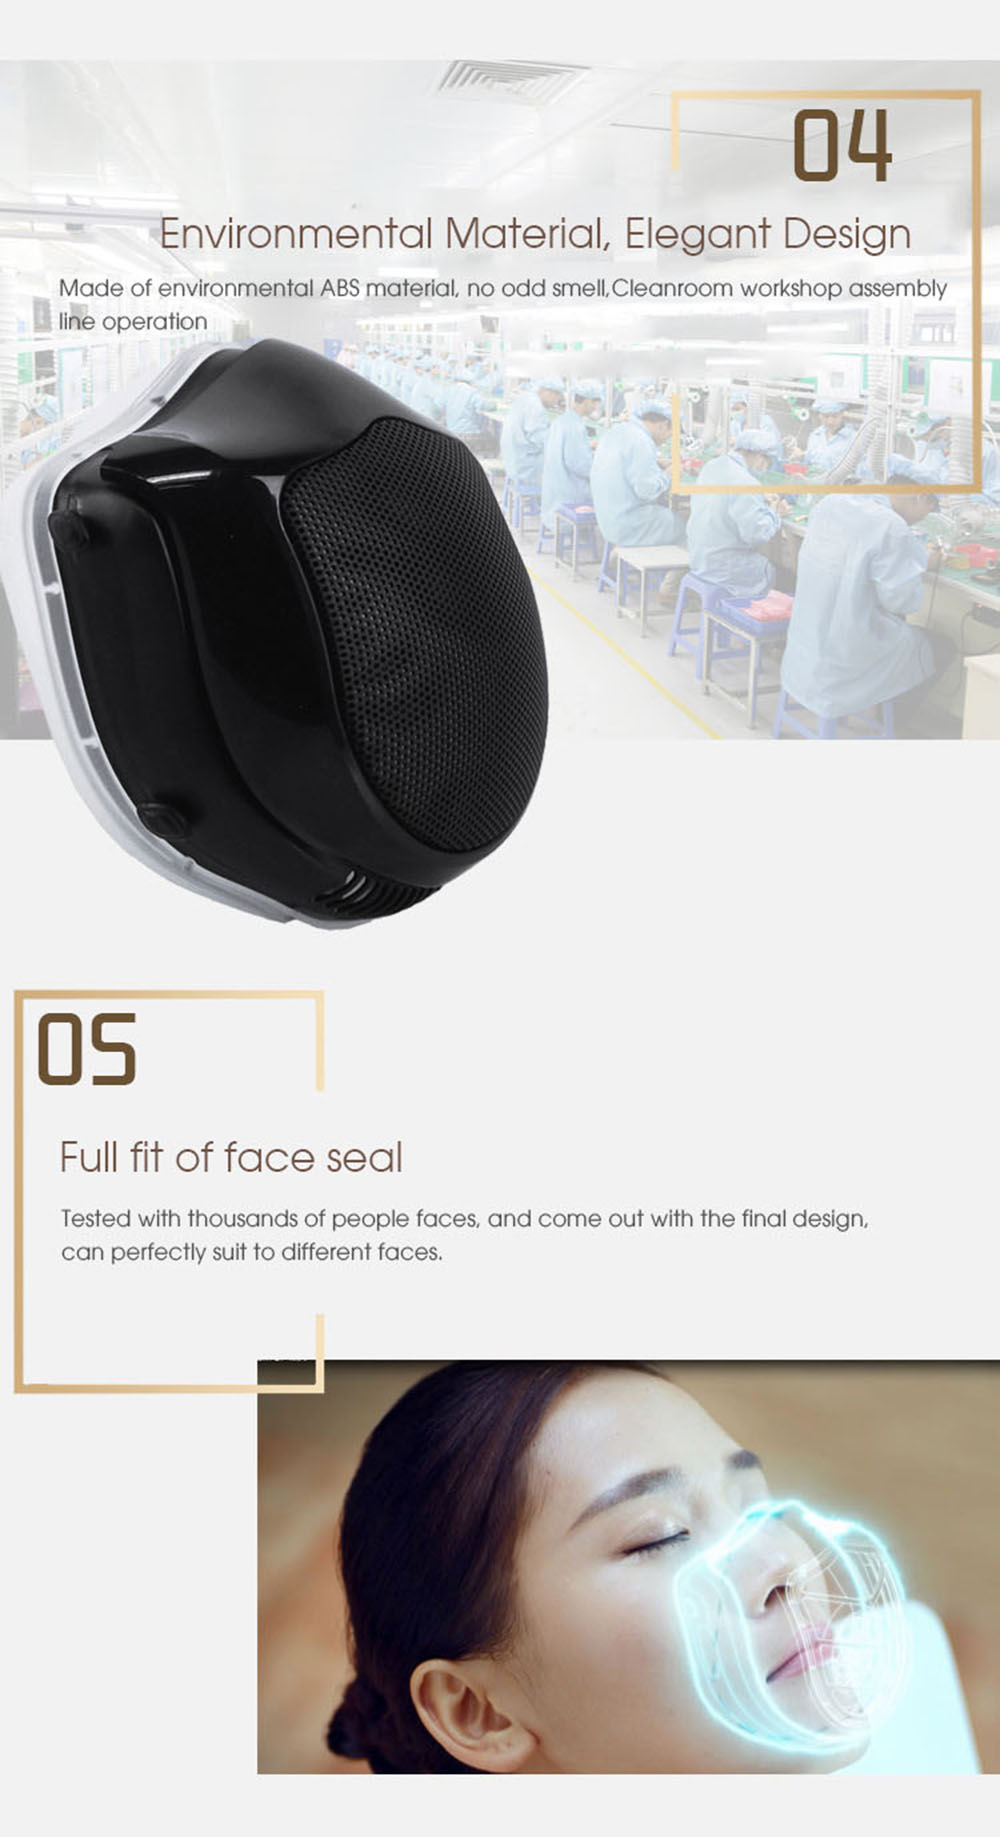 [spot] Xiaomi mijia original Q5s washable trend mask anti haze dustproof and breathable protection